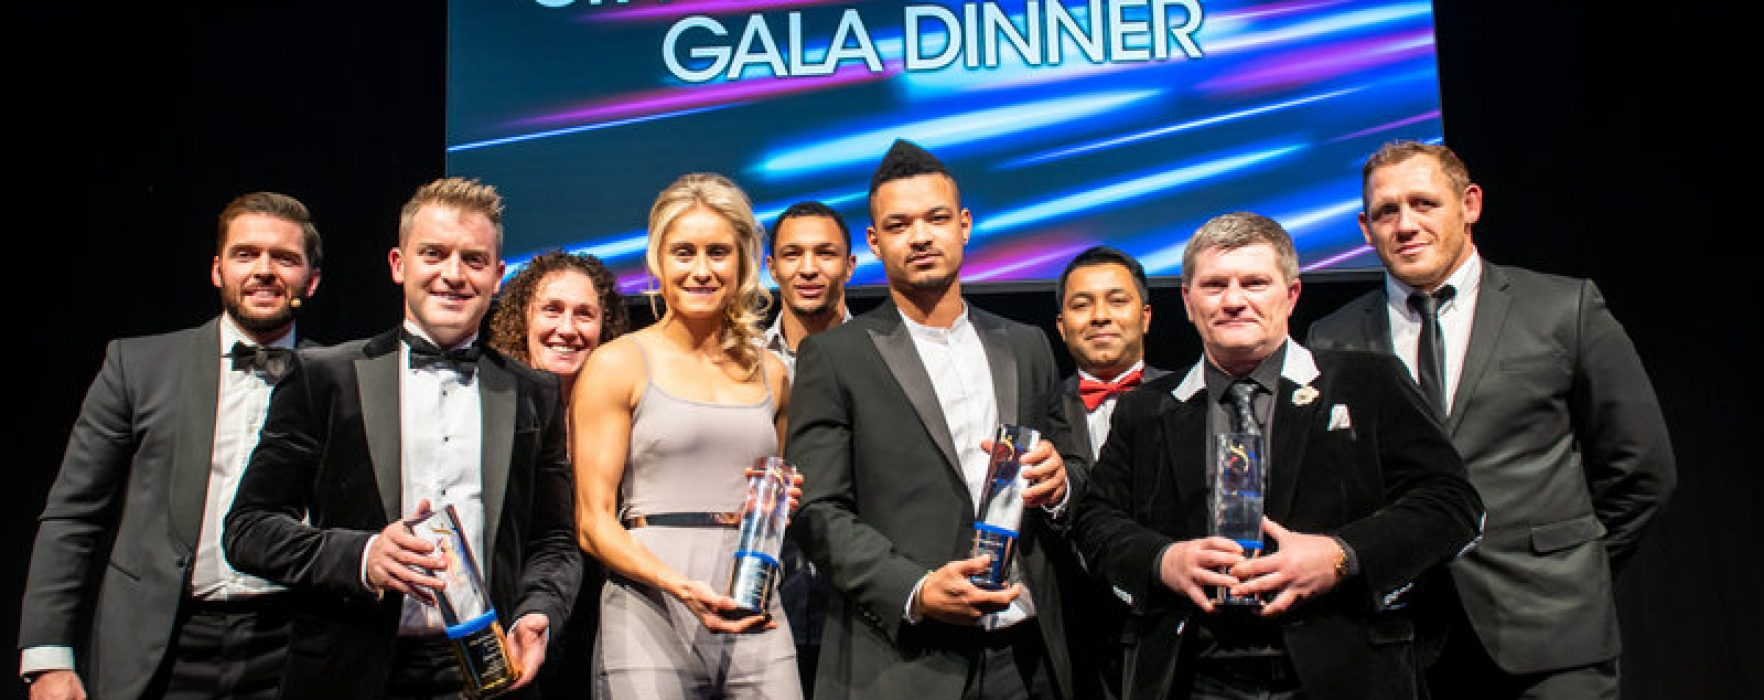 Manchester City of Champions gala dinner honours inspirational figures in business, culture and sport